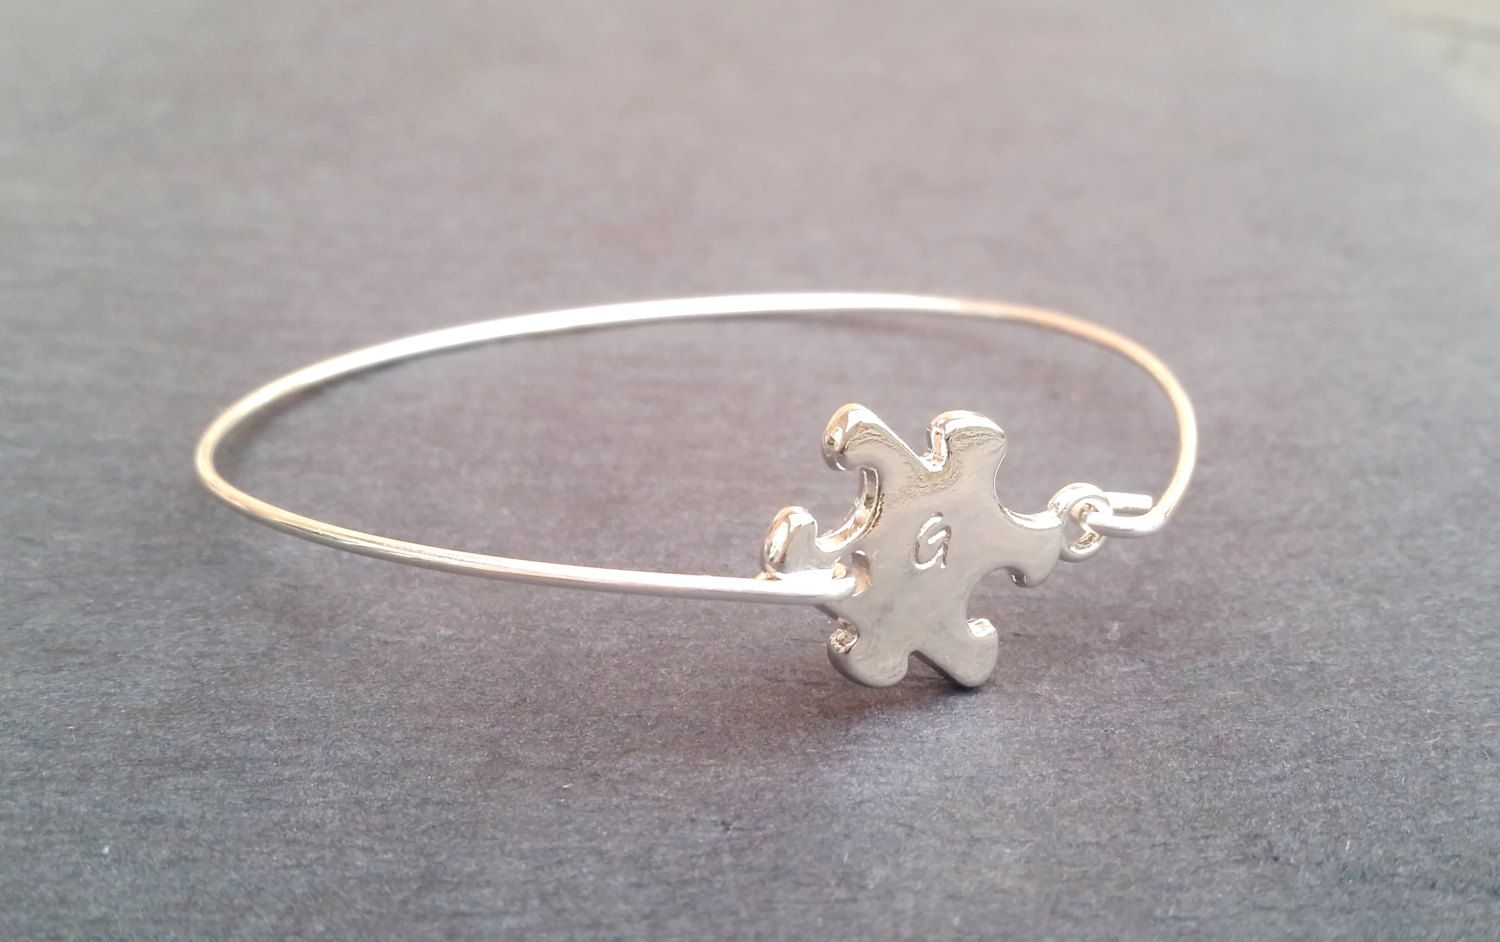 Quartz Bangle Jigsaw QKpaN4Hv